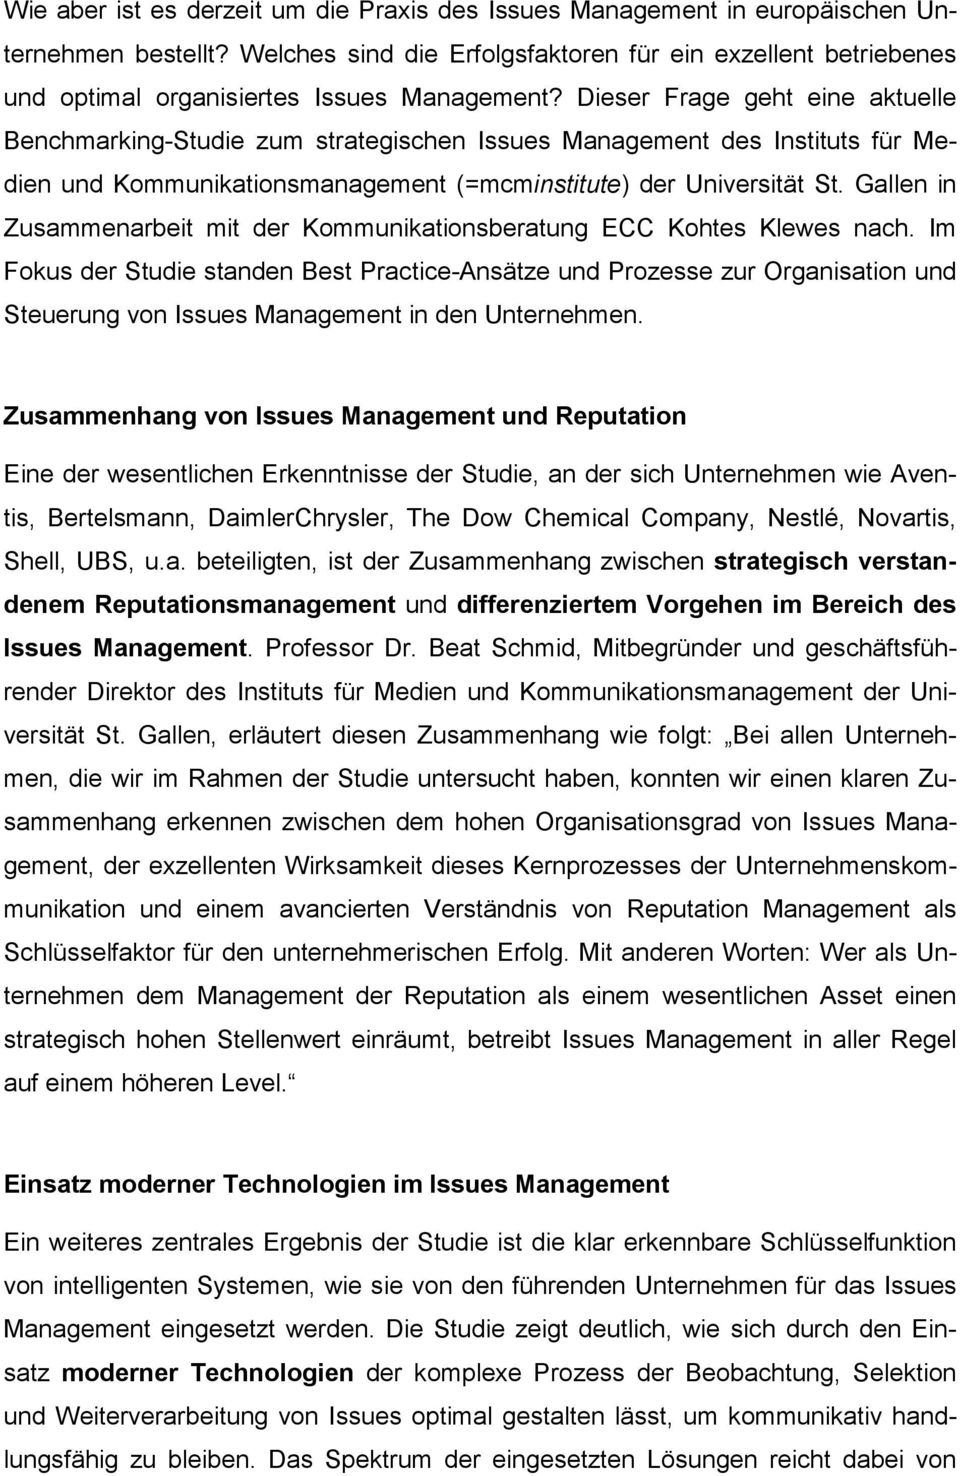 Dieser Frage geht eine aktuelle Benchmarking-Studie zum strategischen Issues Management des Instituts für Medien und Kommunikationsmanagement (=mcminstitute) der Universität St.